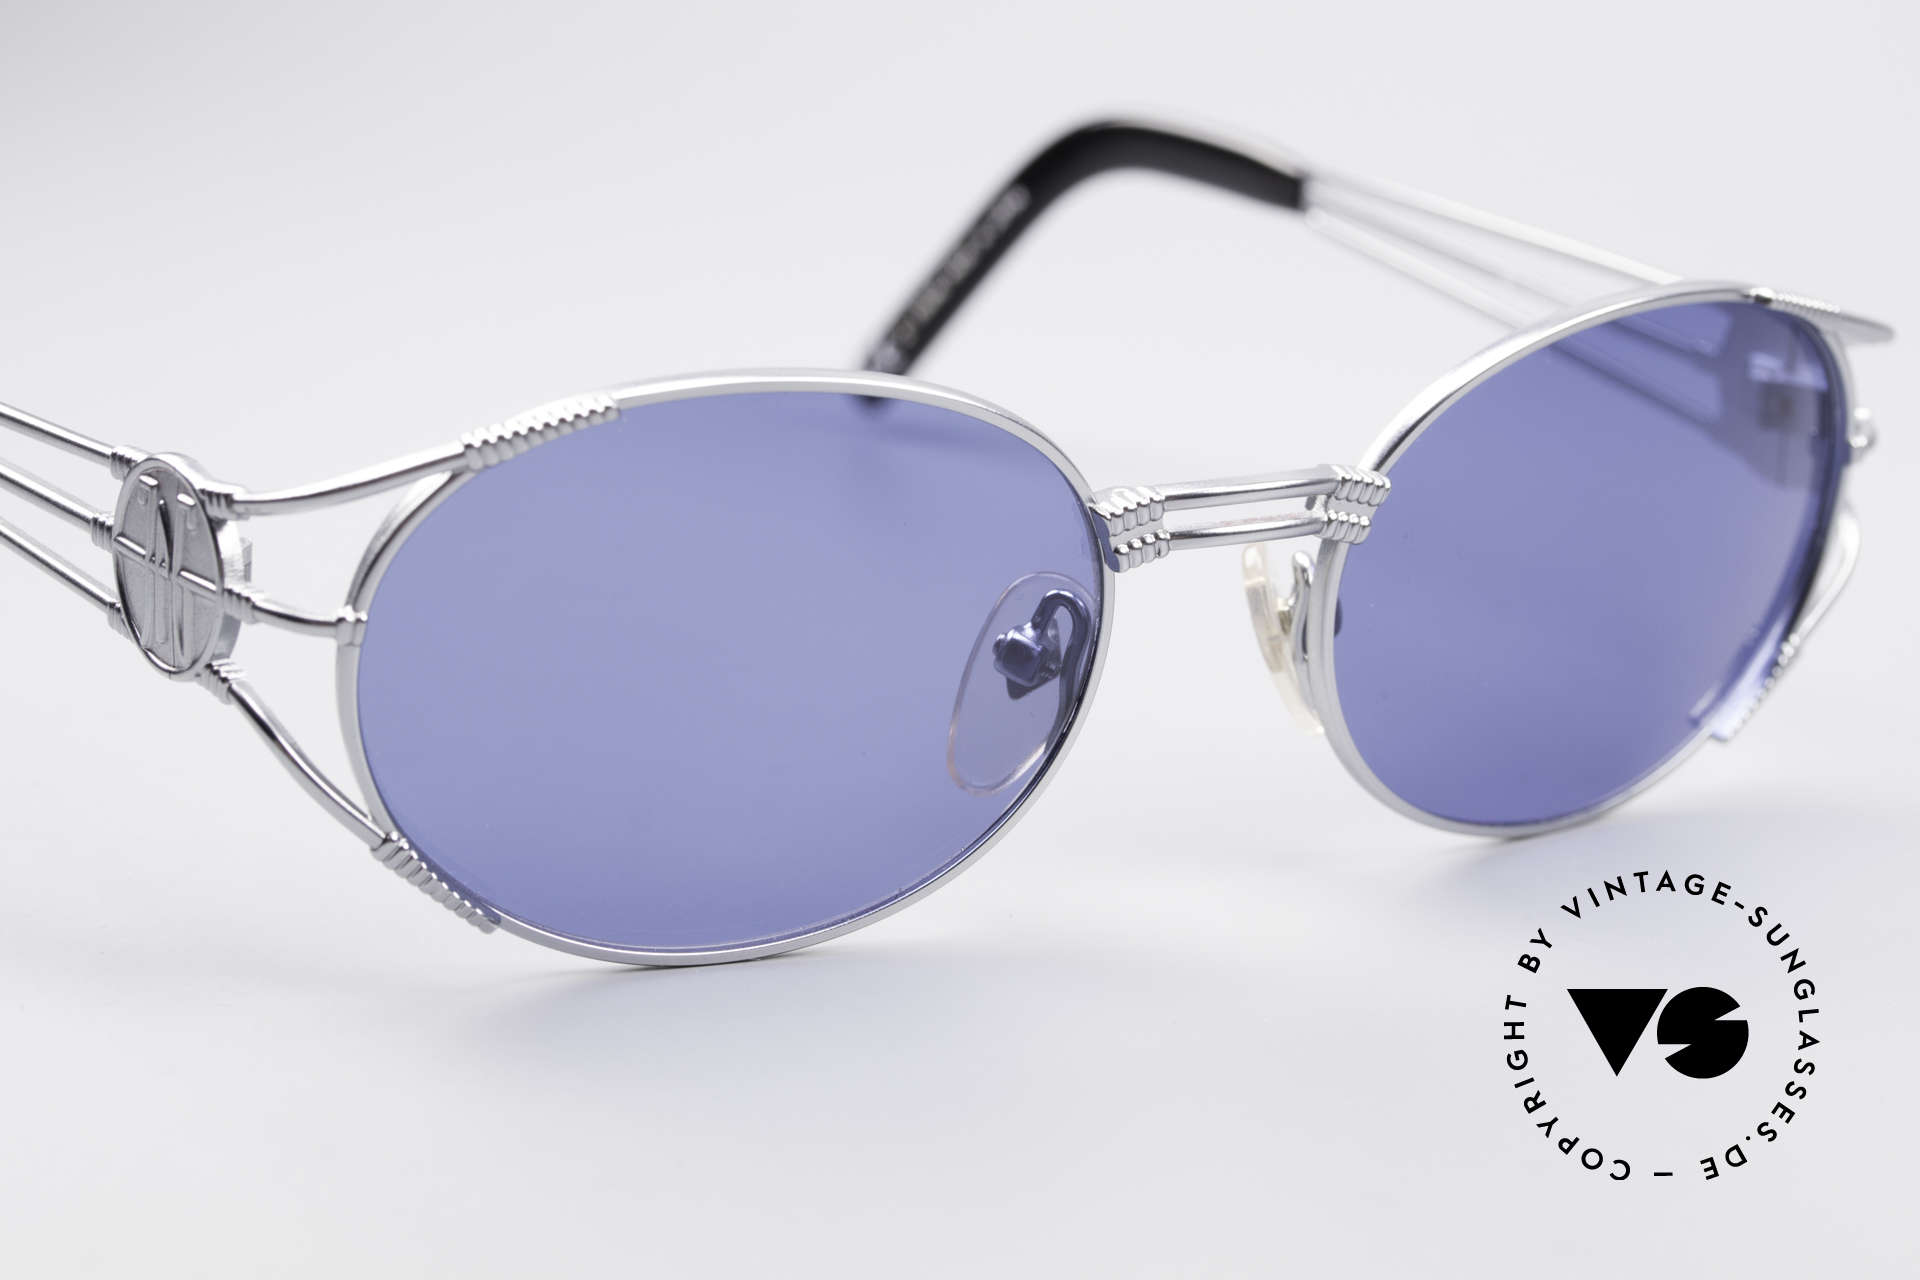 Jean Paul Gaultier 58-5106 JPG Oval Steampunk Shades, NO RETRO sunglasses, but a 20 years old original, Made for Men and Women